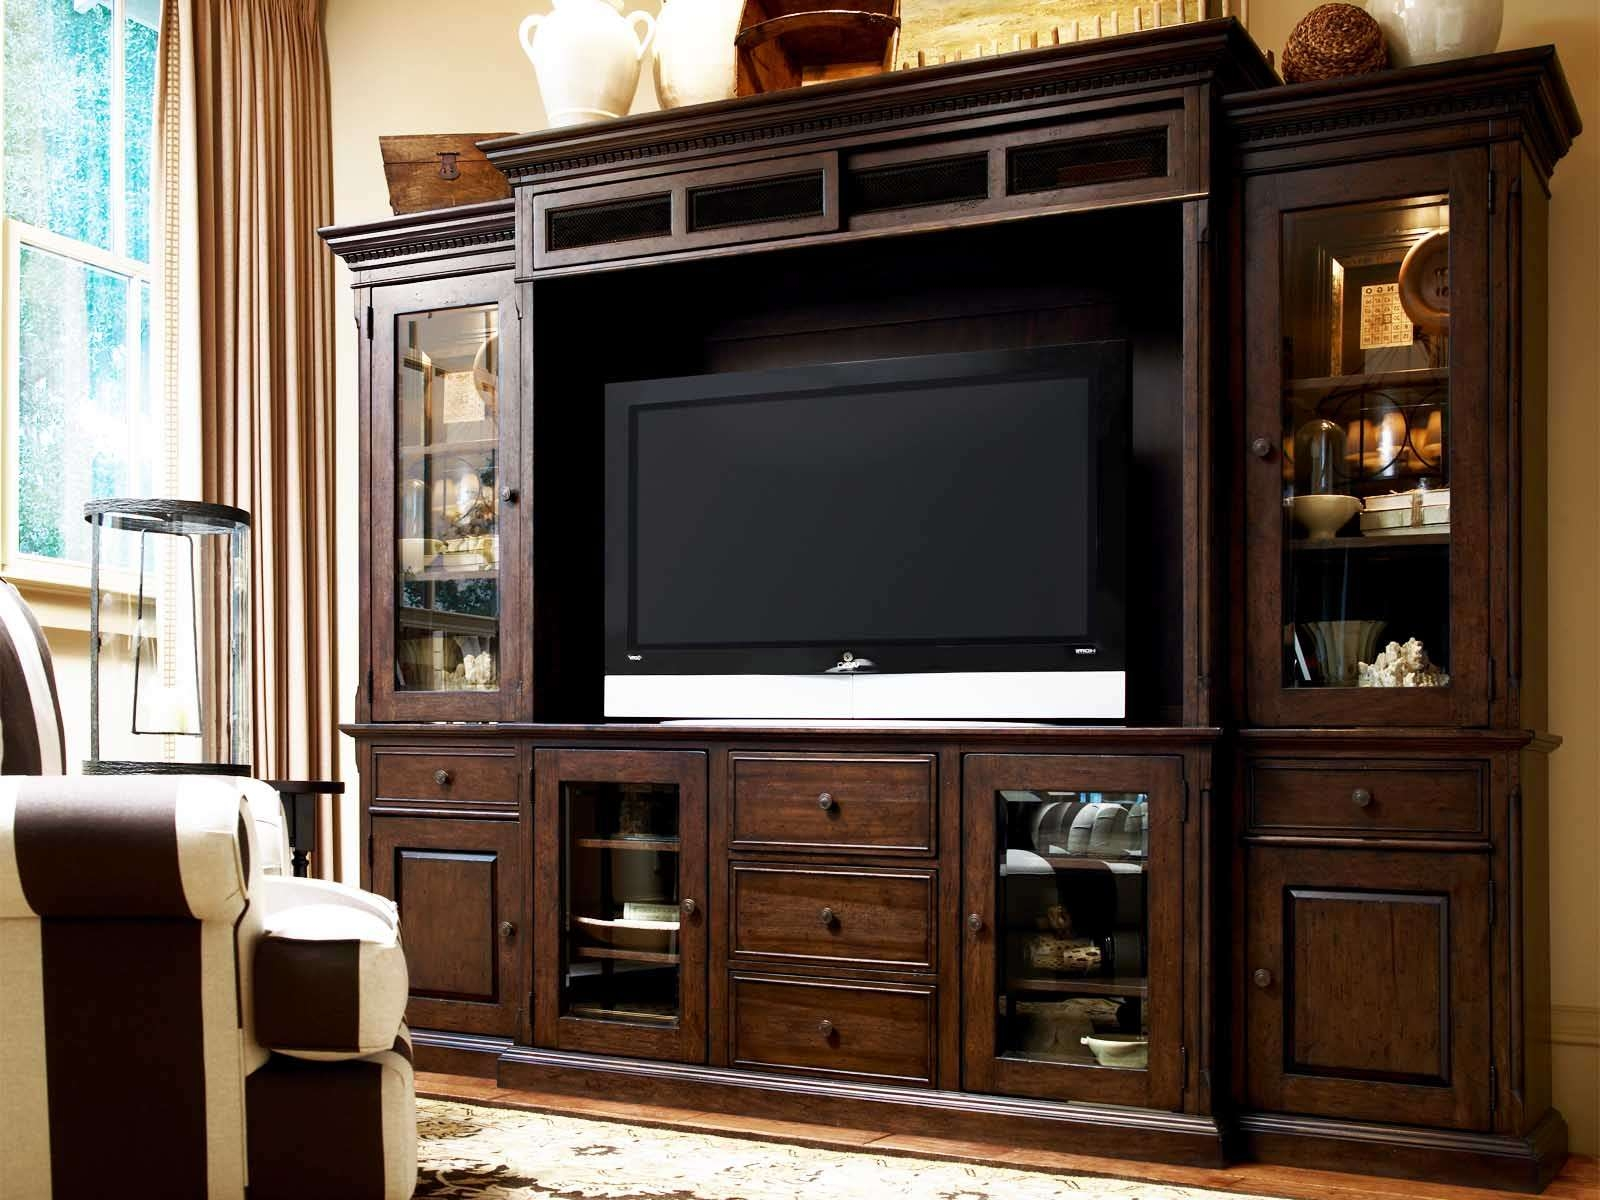 Tv Units With Glass Doors Image Collections – Doors Design Ideas Inside Tv Cabinets With Storage (View 11 of 20)